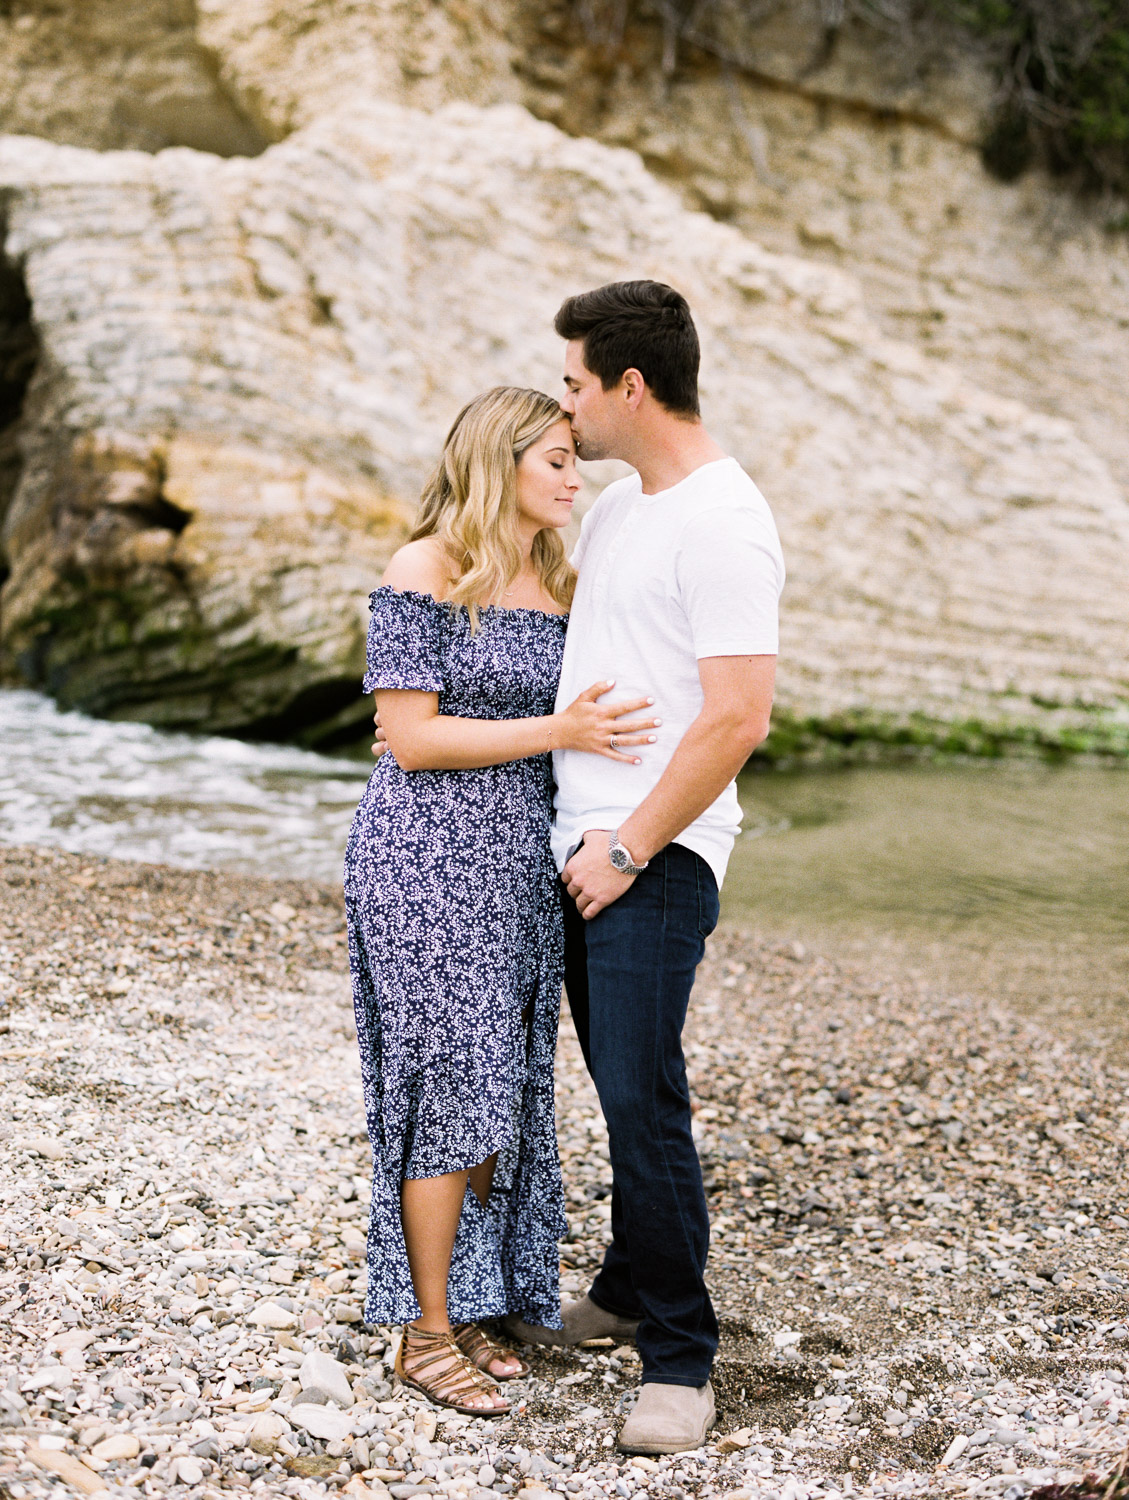 Ashley-Rae-Studio-San-Luis-Obispo-Engagement-Session-Santa-Barbara-Wedding-Photographer-142.jpg